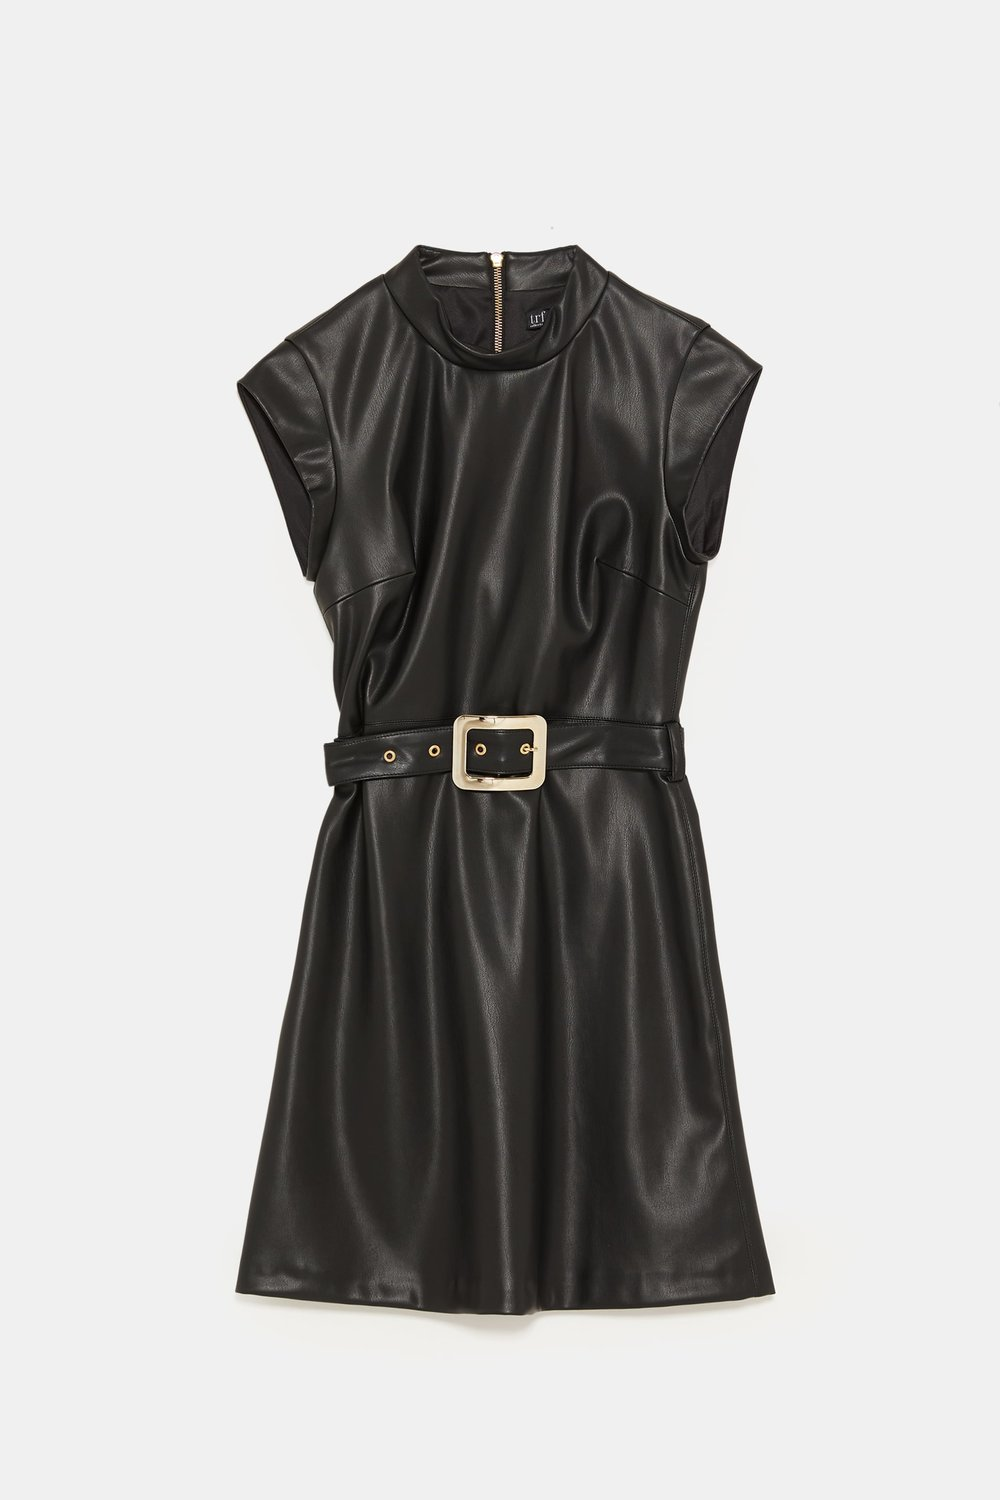 https://www.zara.com/ca/en/faux-leather-dres-with-belt-p07871189.html?v1=6797664&v2=1081007